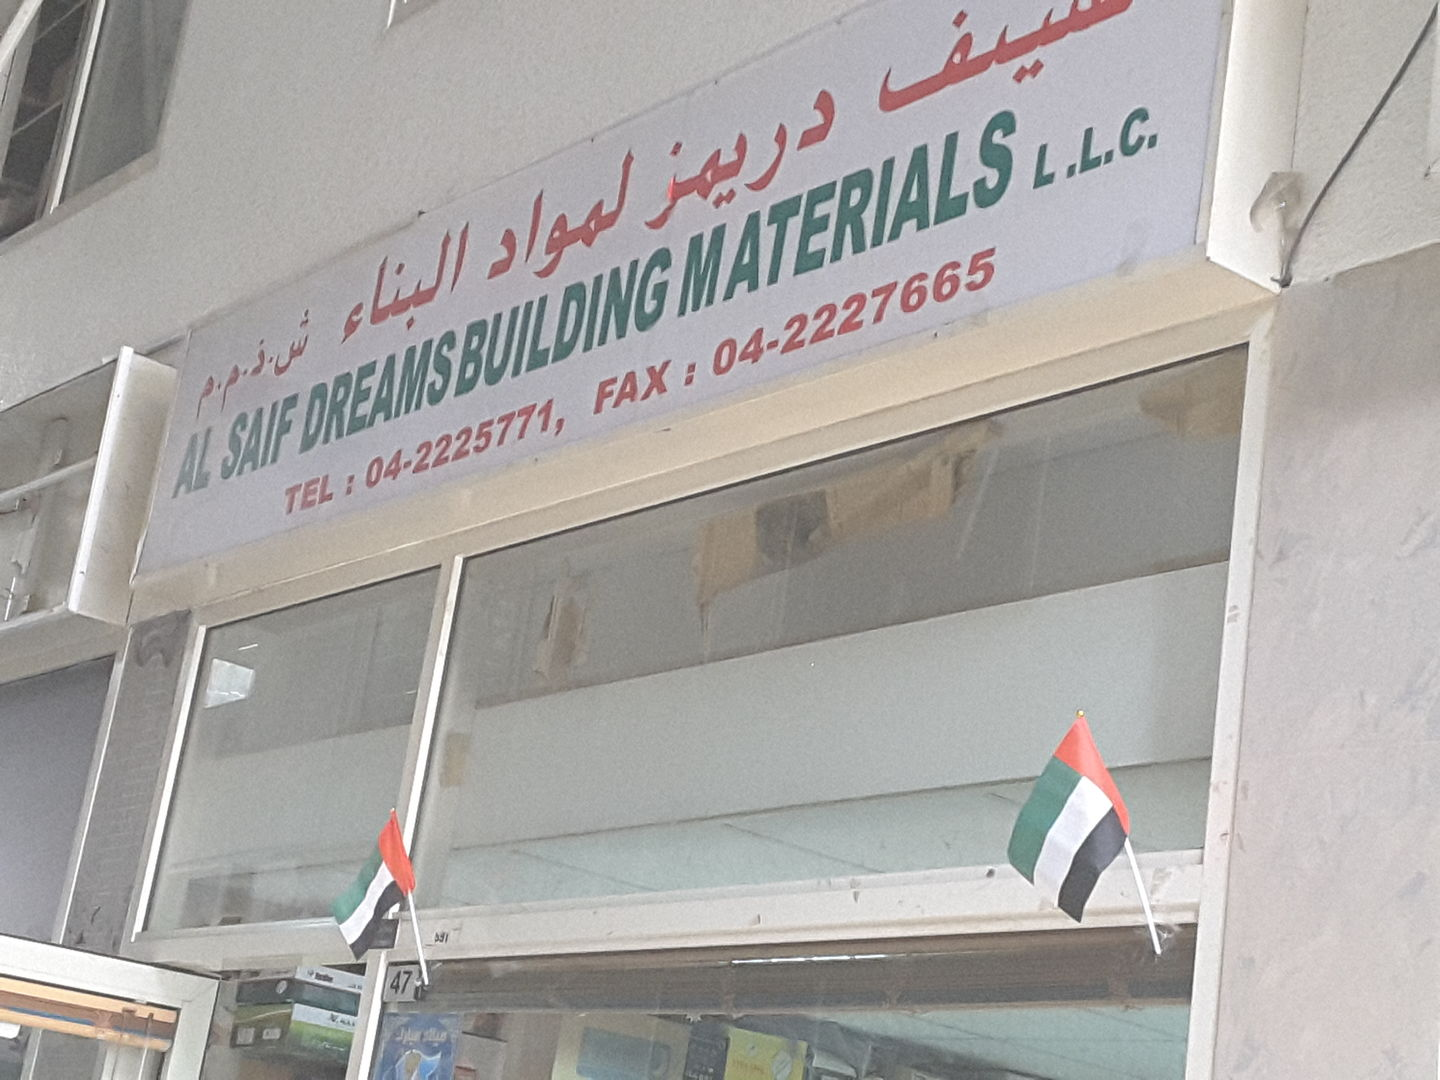 HiDubai-business-al-saif-dreams-building-materials-b2b-services-construction-building-material-trading-naif-dubai-2